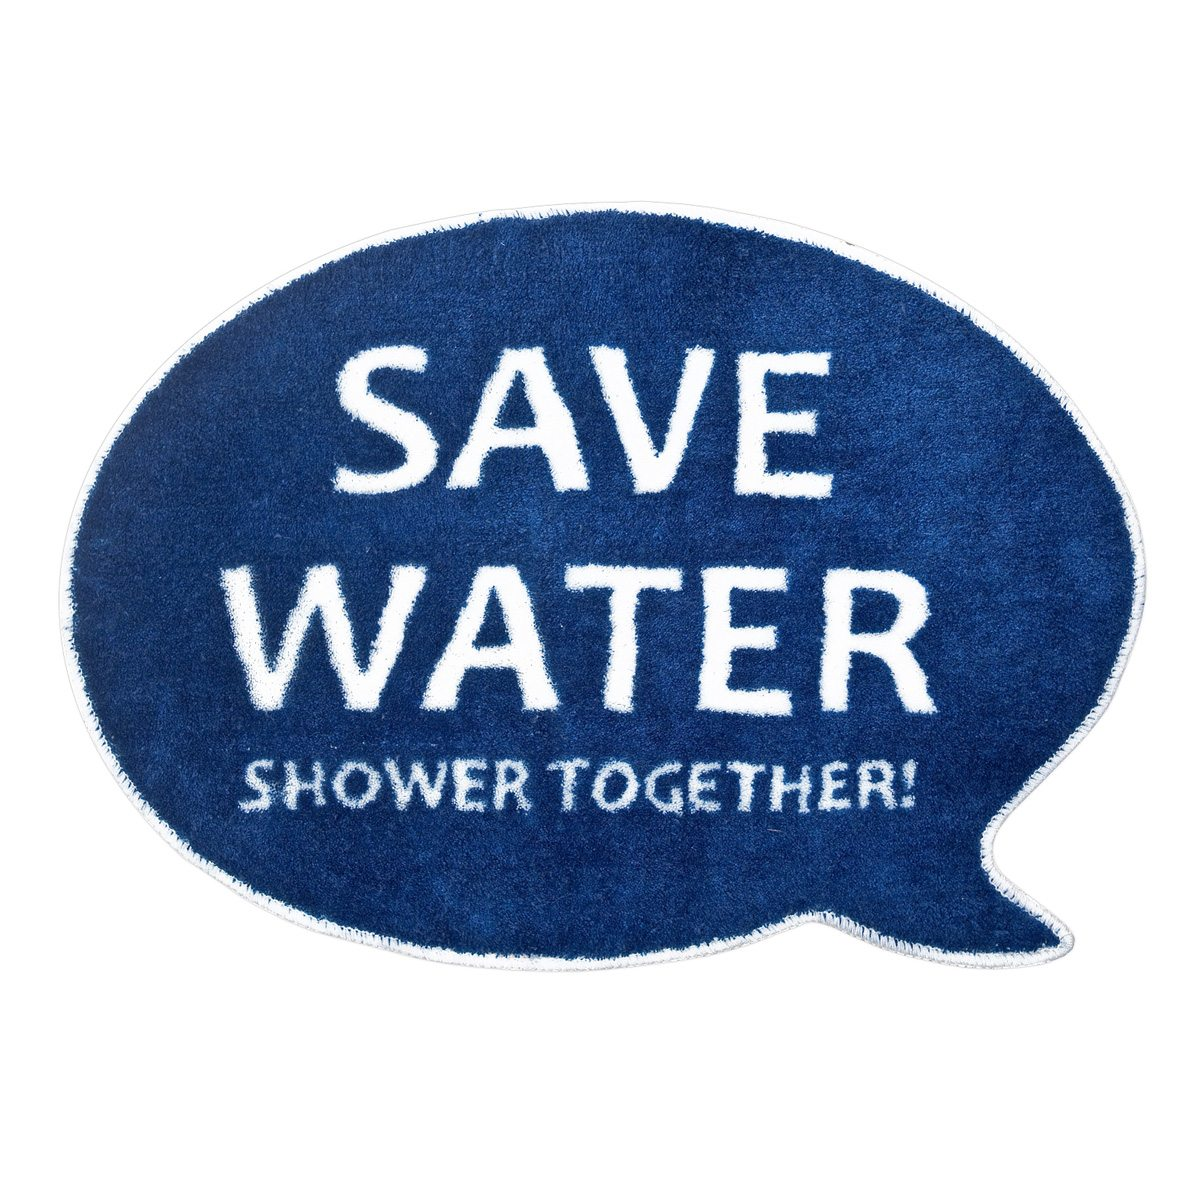 Duschmatte Save Water, Shower Together!